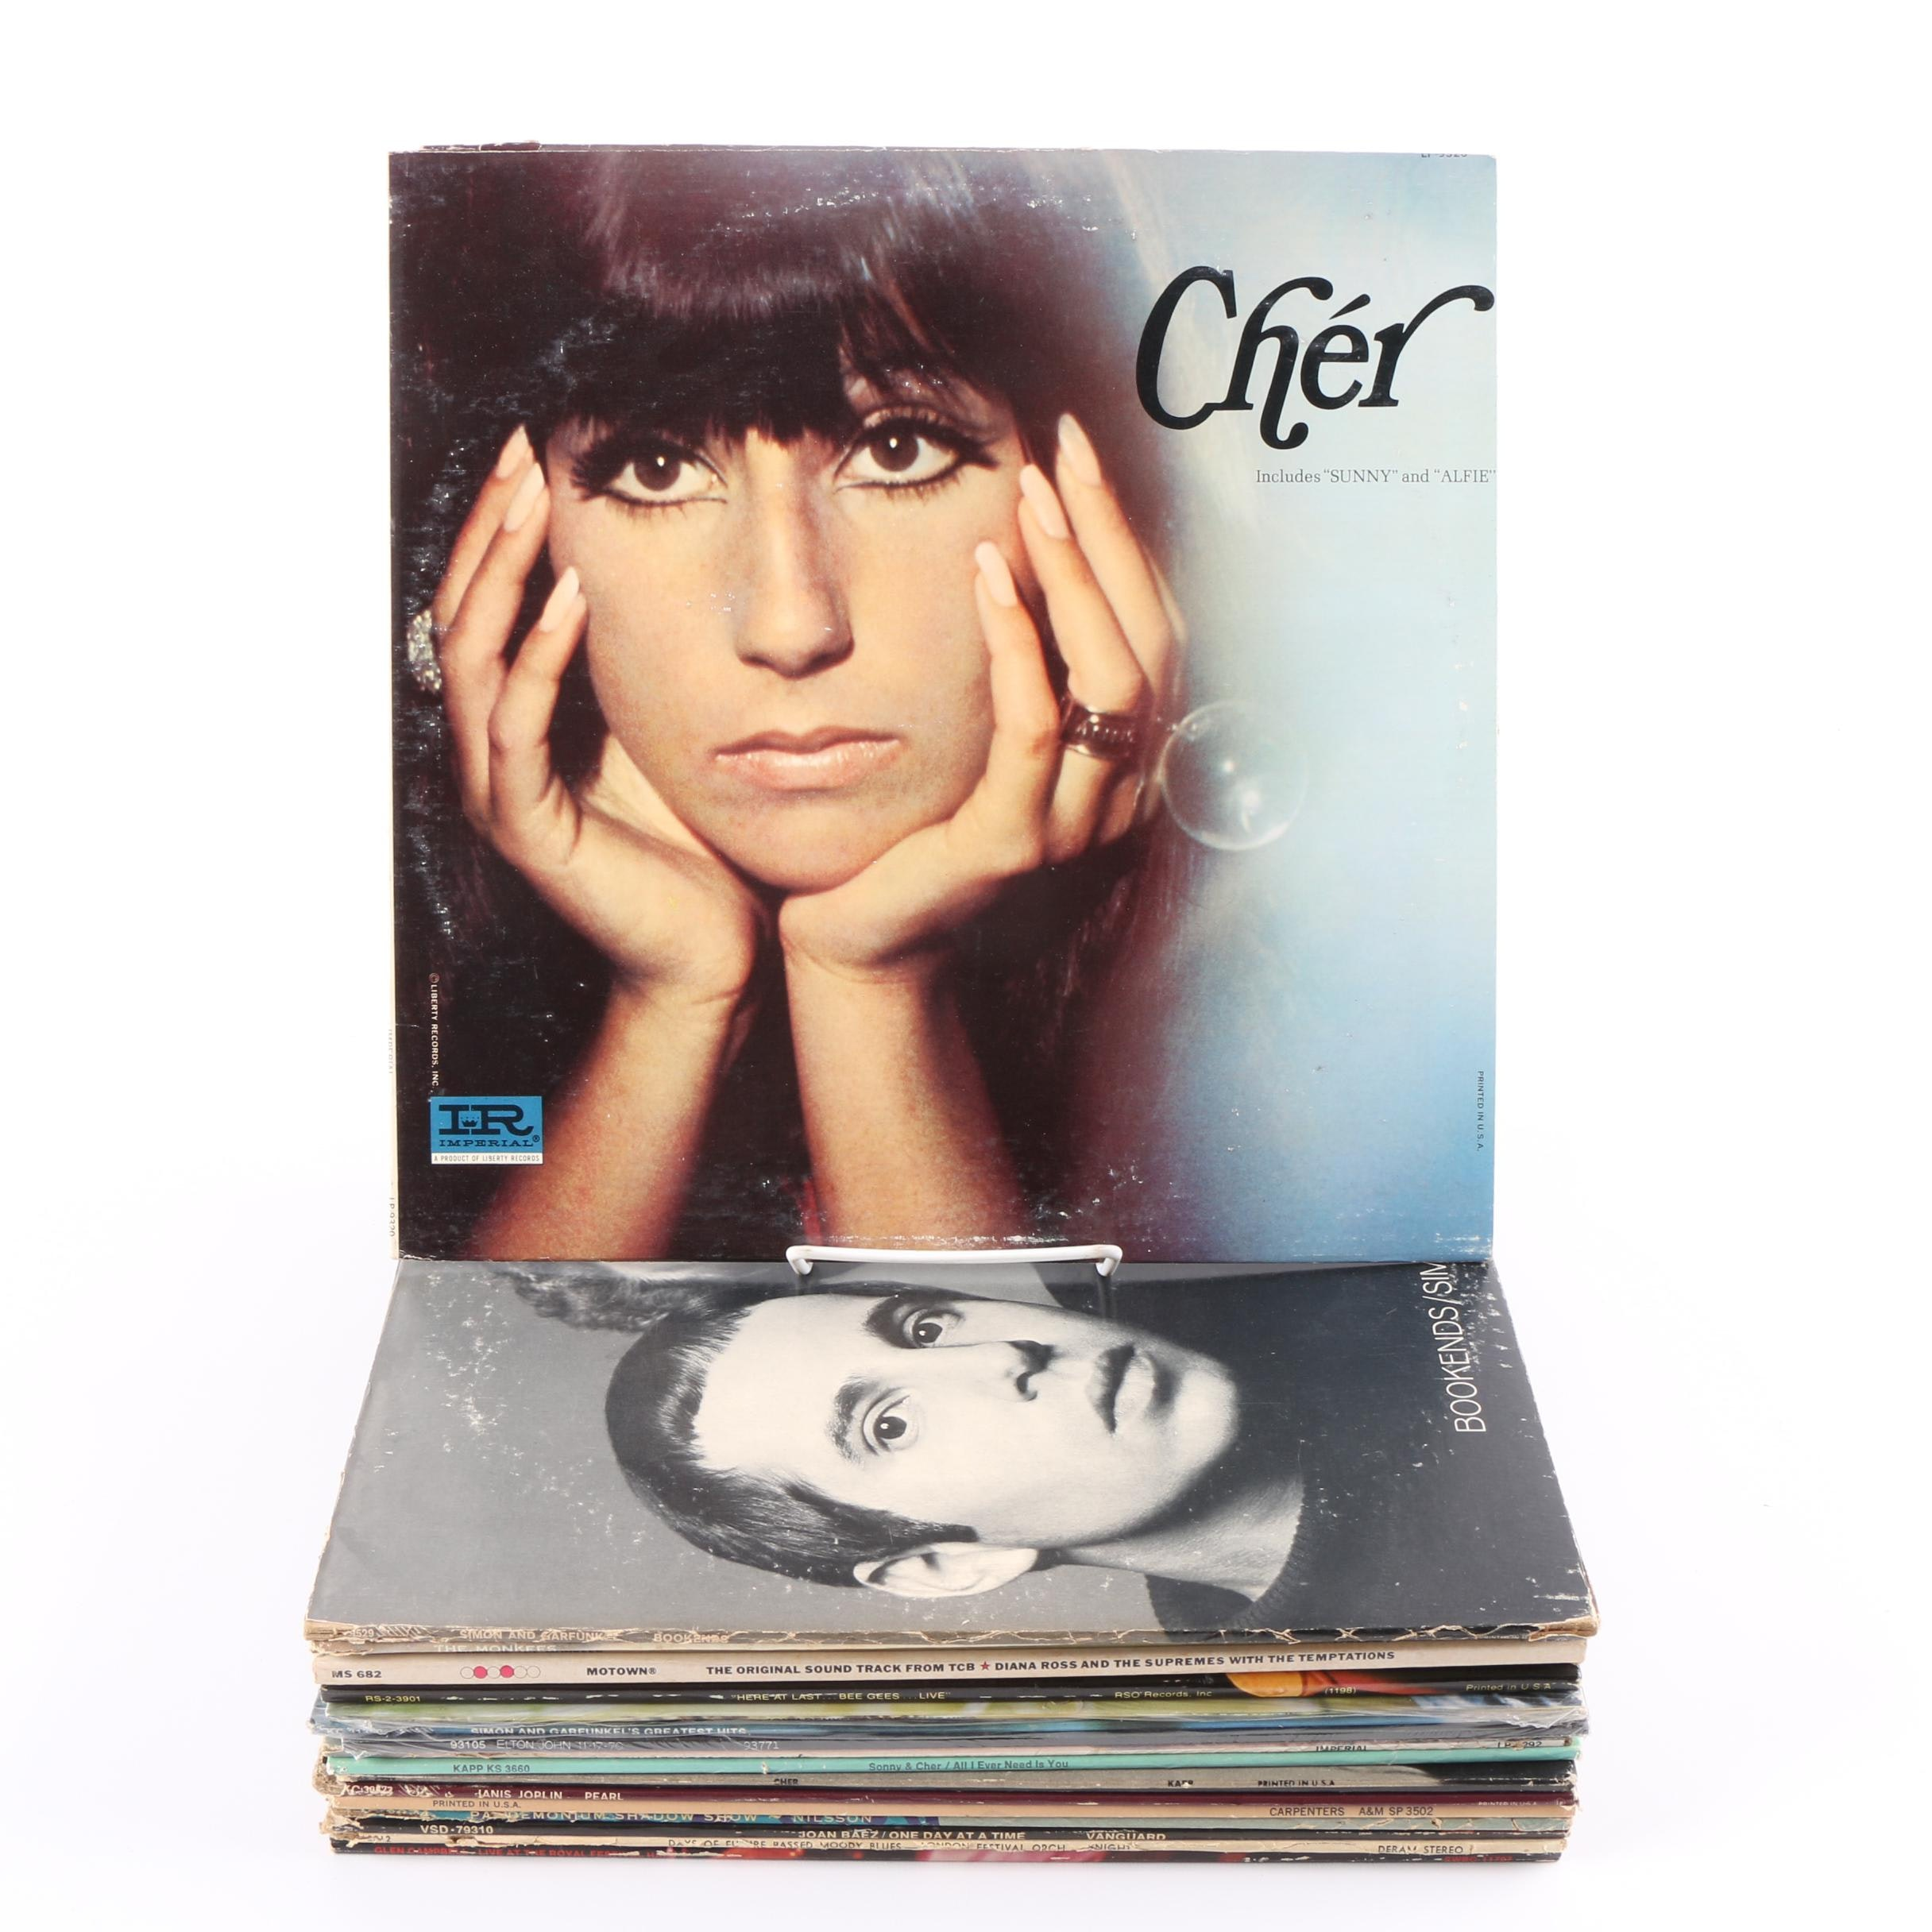 Cher, Simon and Garfunkel, Janis Joplin and Other Vinyl Records